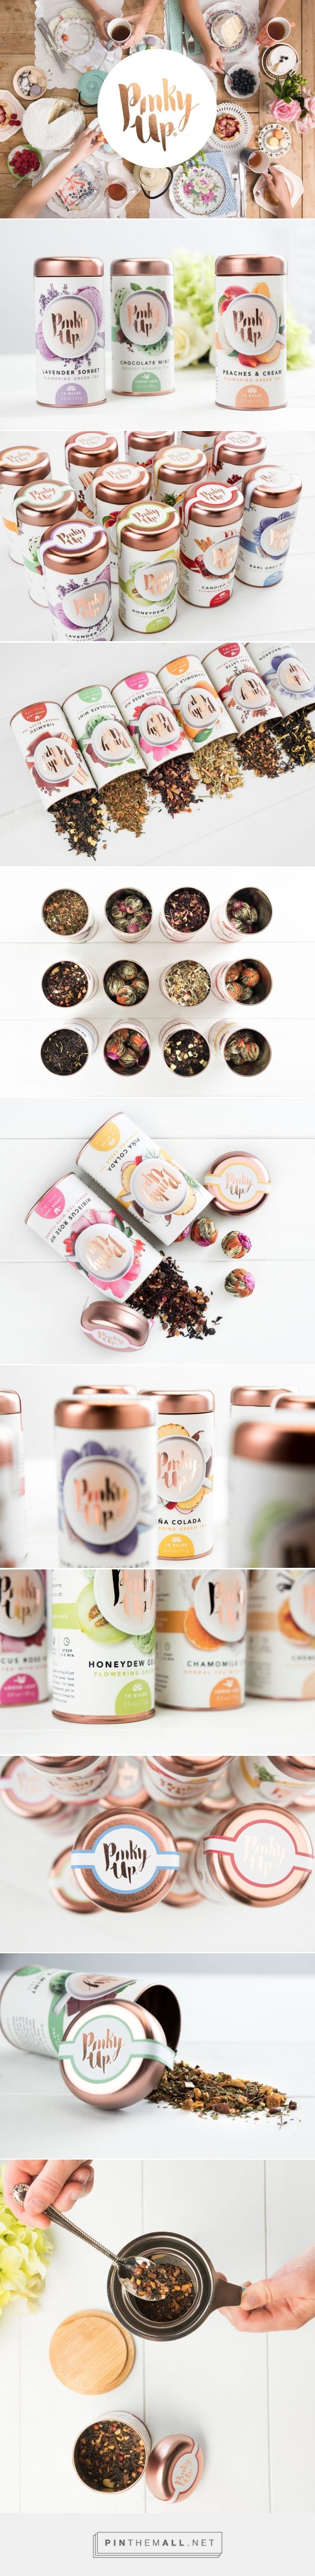 Pinky Up Tea - Packaging of the World - Creative Package Design Gallery - http://www.packagingoftheworld.com/2016/09/pinky-up-tea.html